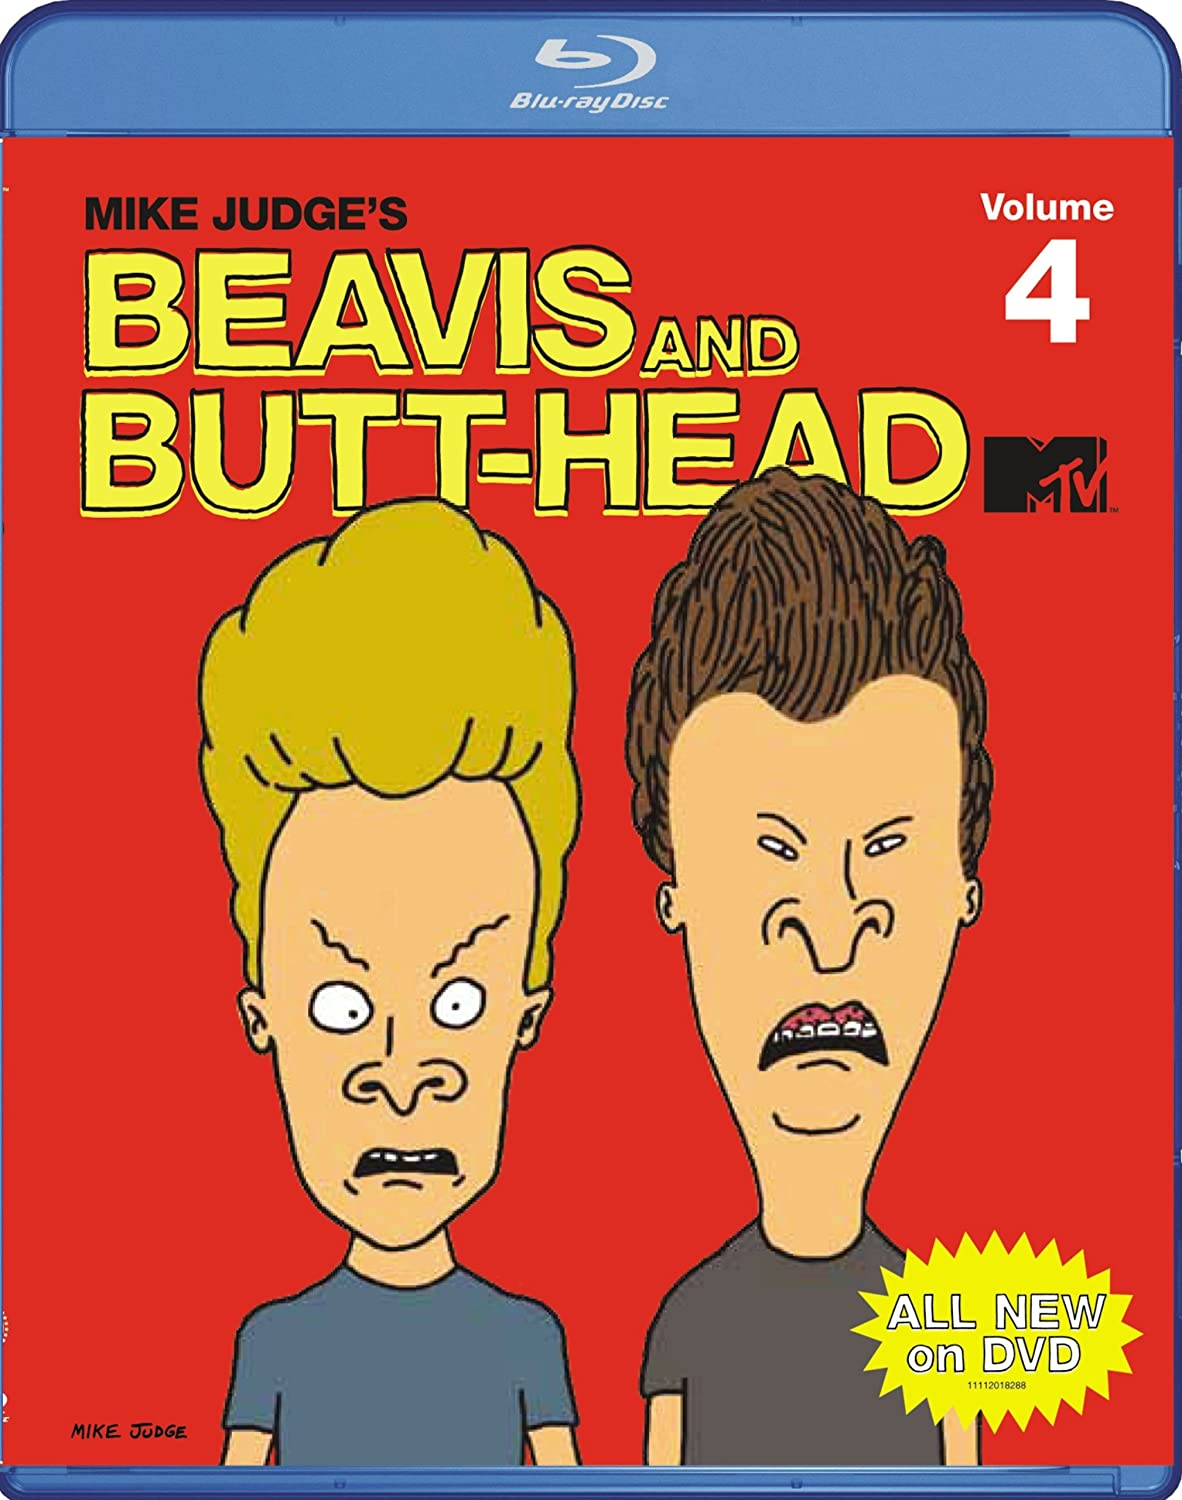 Beavis Credence and Butt-Head: Volume Chicago Mall Blu-ray 4